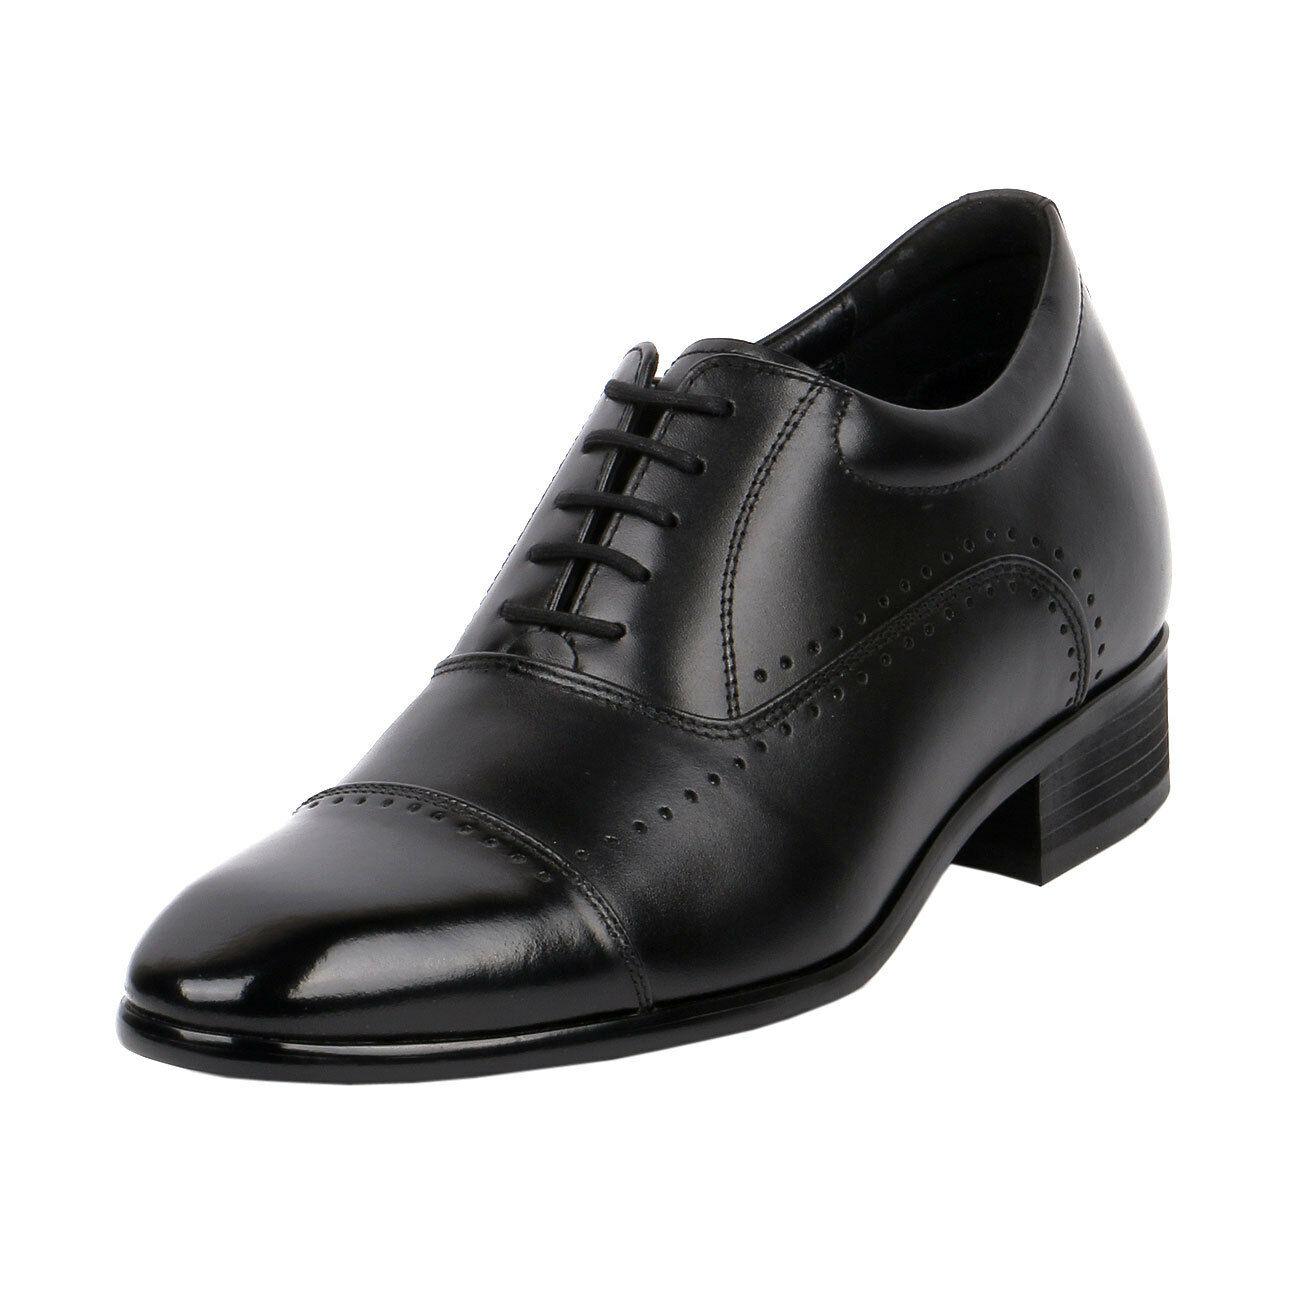 JW505 Wide Feet Feet Wide Shoe Suiting Up For Dress, Work and Formal 2.8